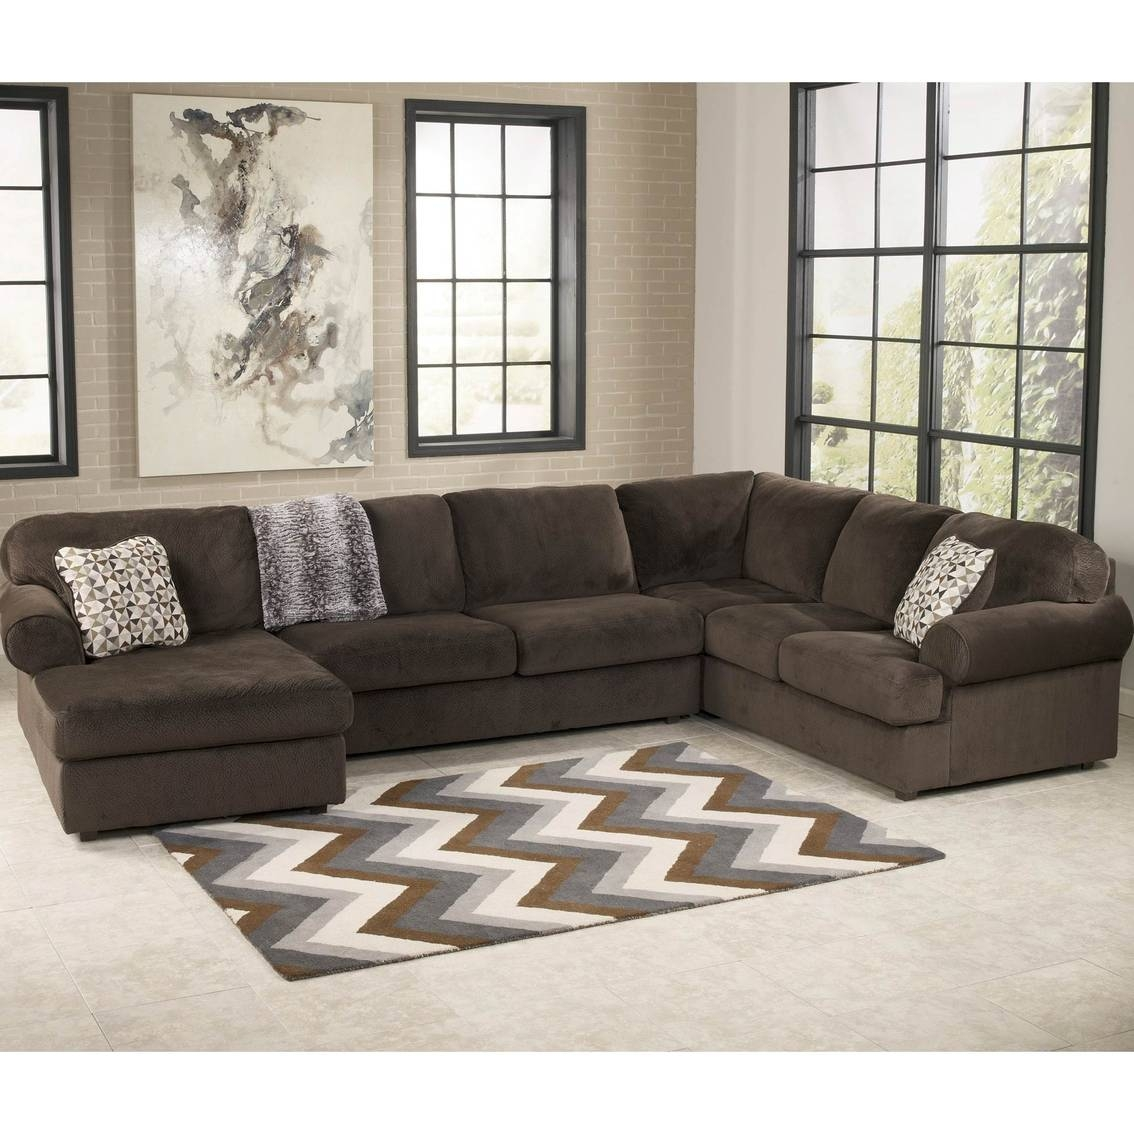 Signature Designashley Jessa Place 3 Pc. Sectional Sofa within Signature Design Sectional Sofas (Image 14 of 15)